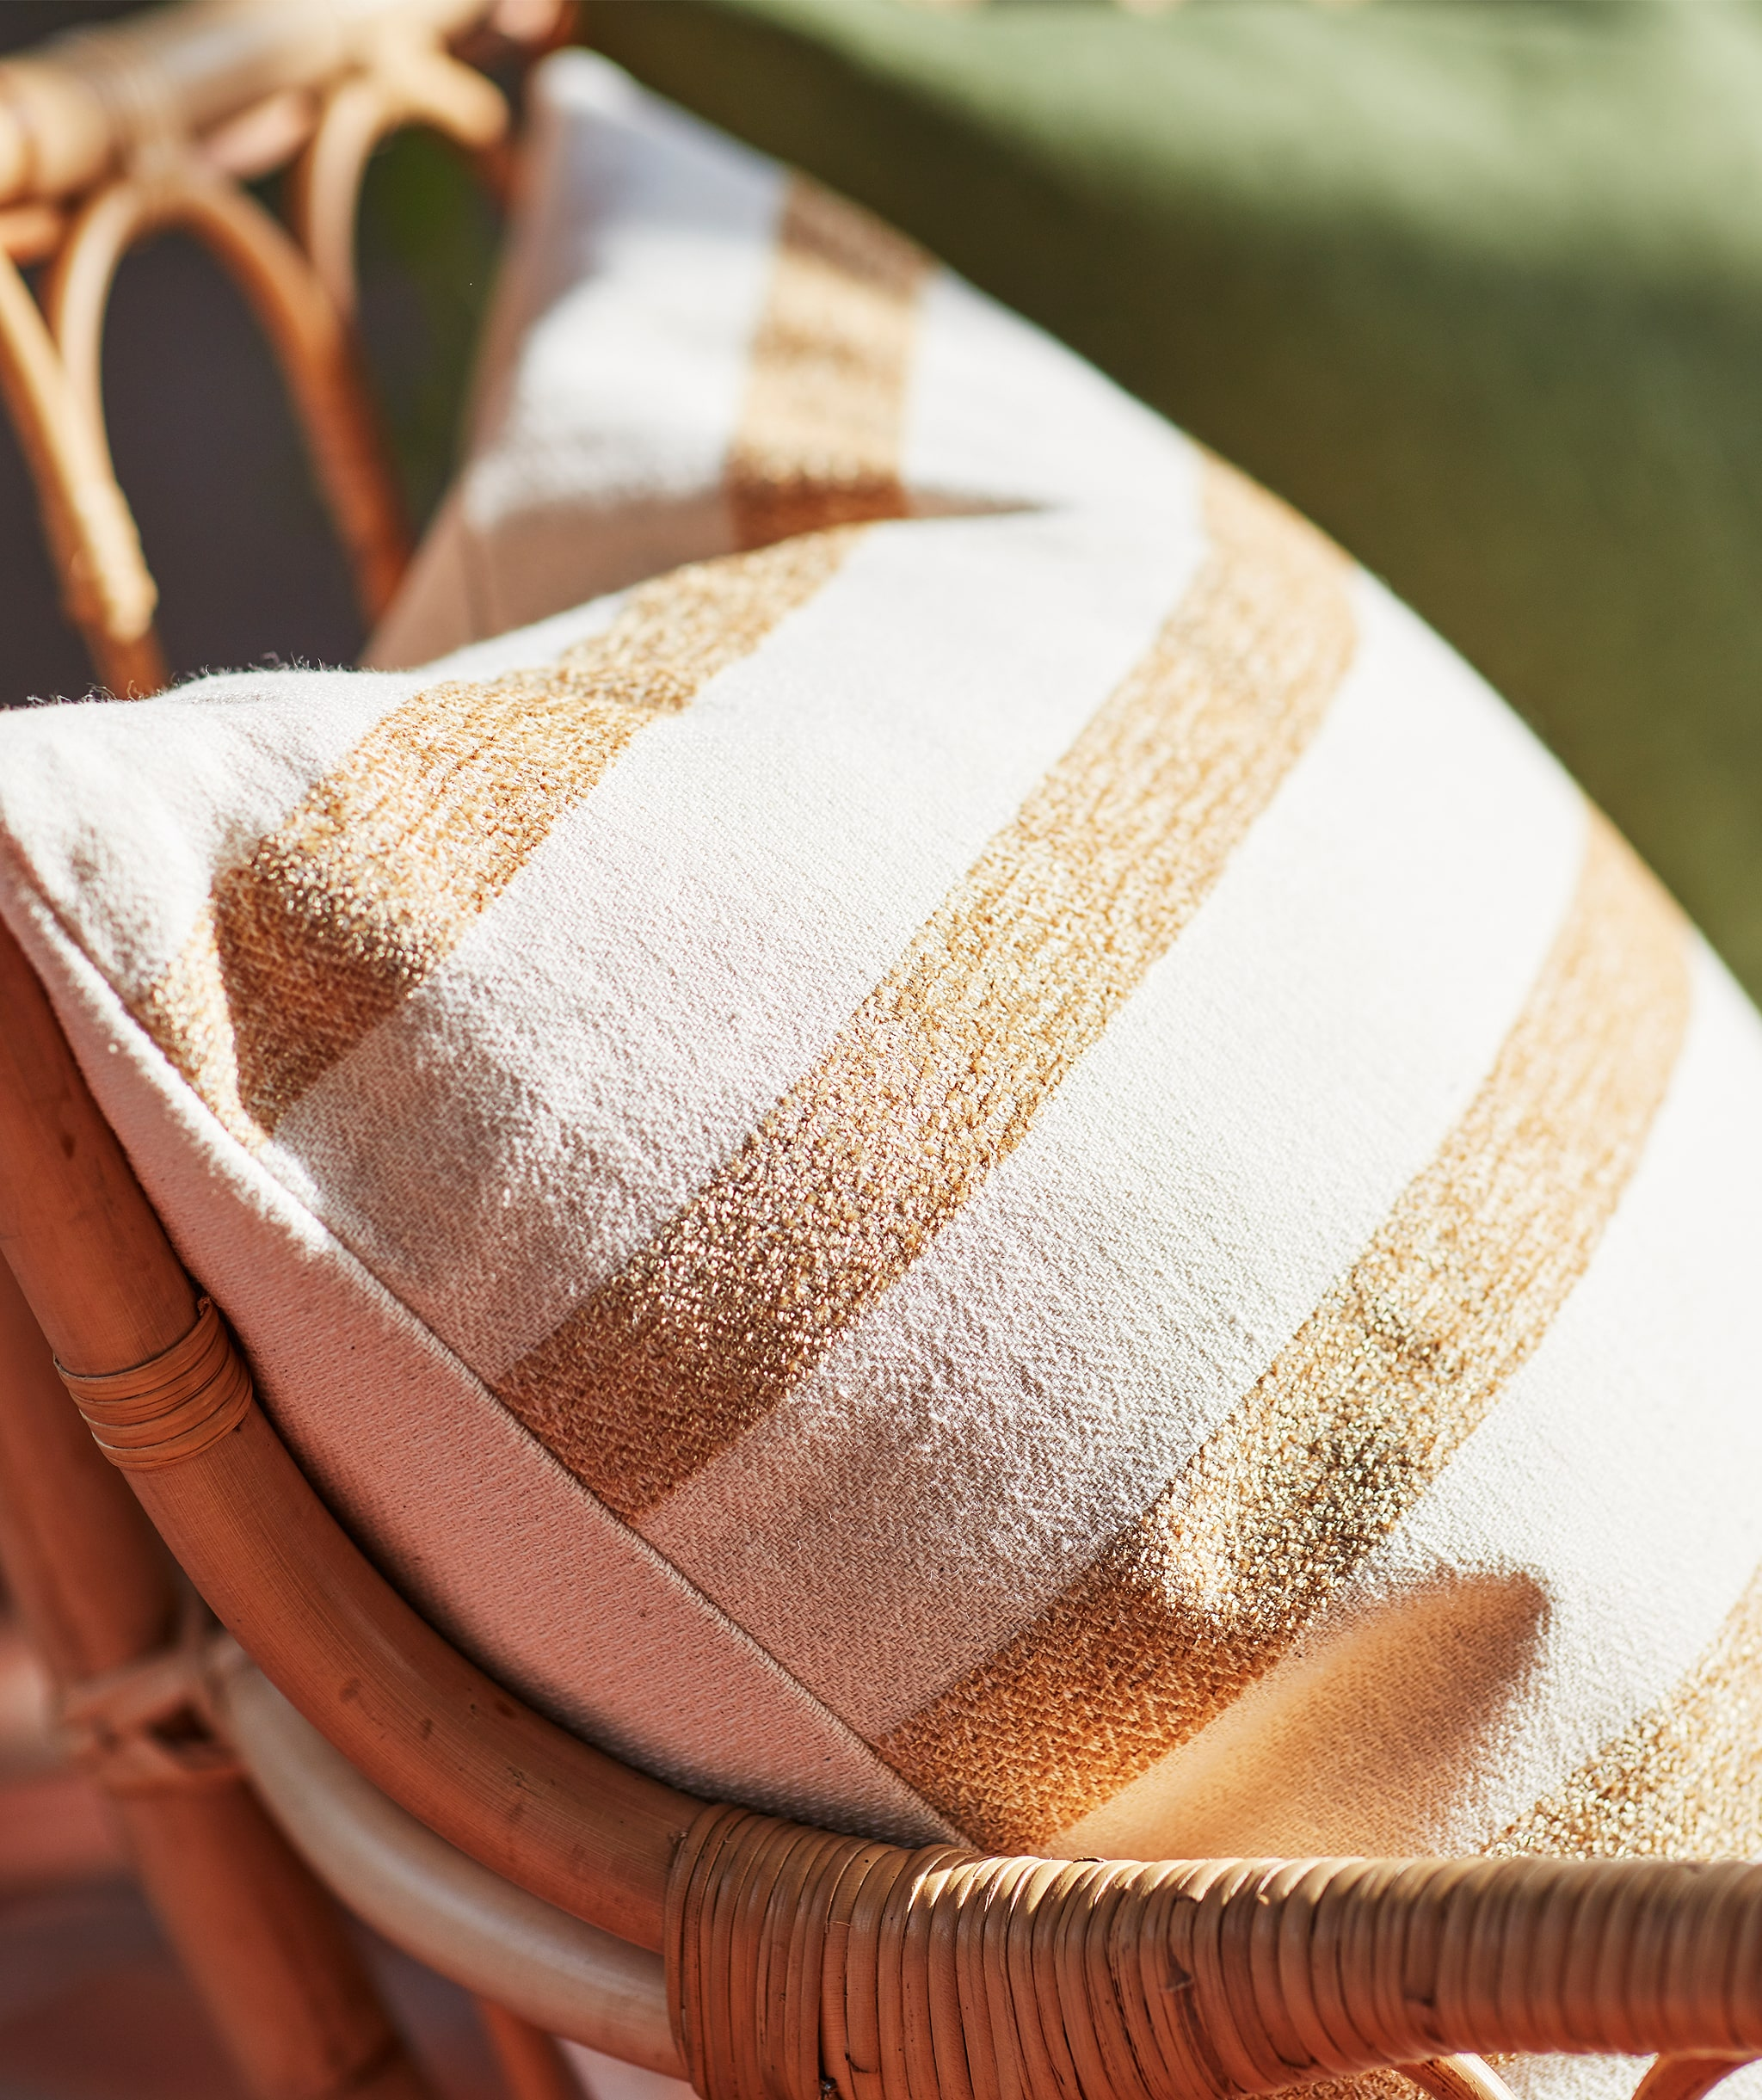 Close-up of a striped cotton pillow in beige and light brown in a rattan chair.